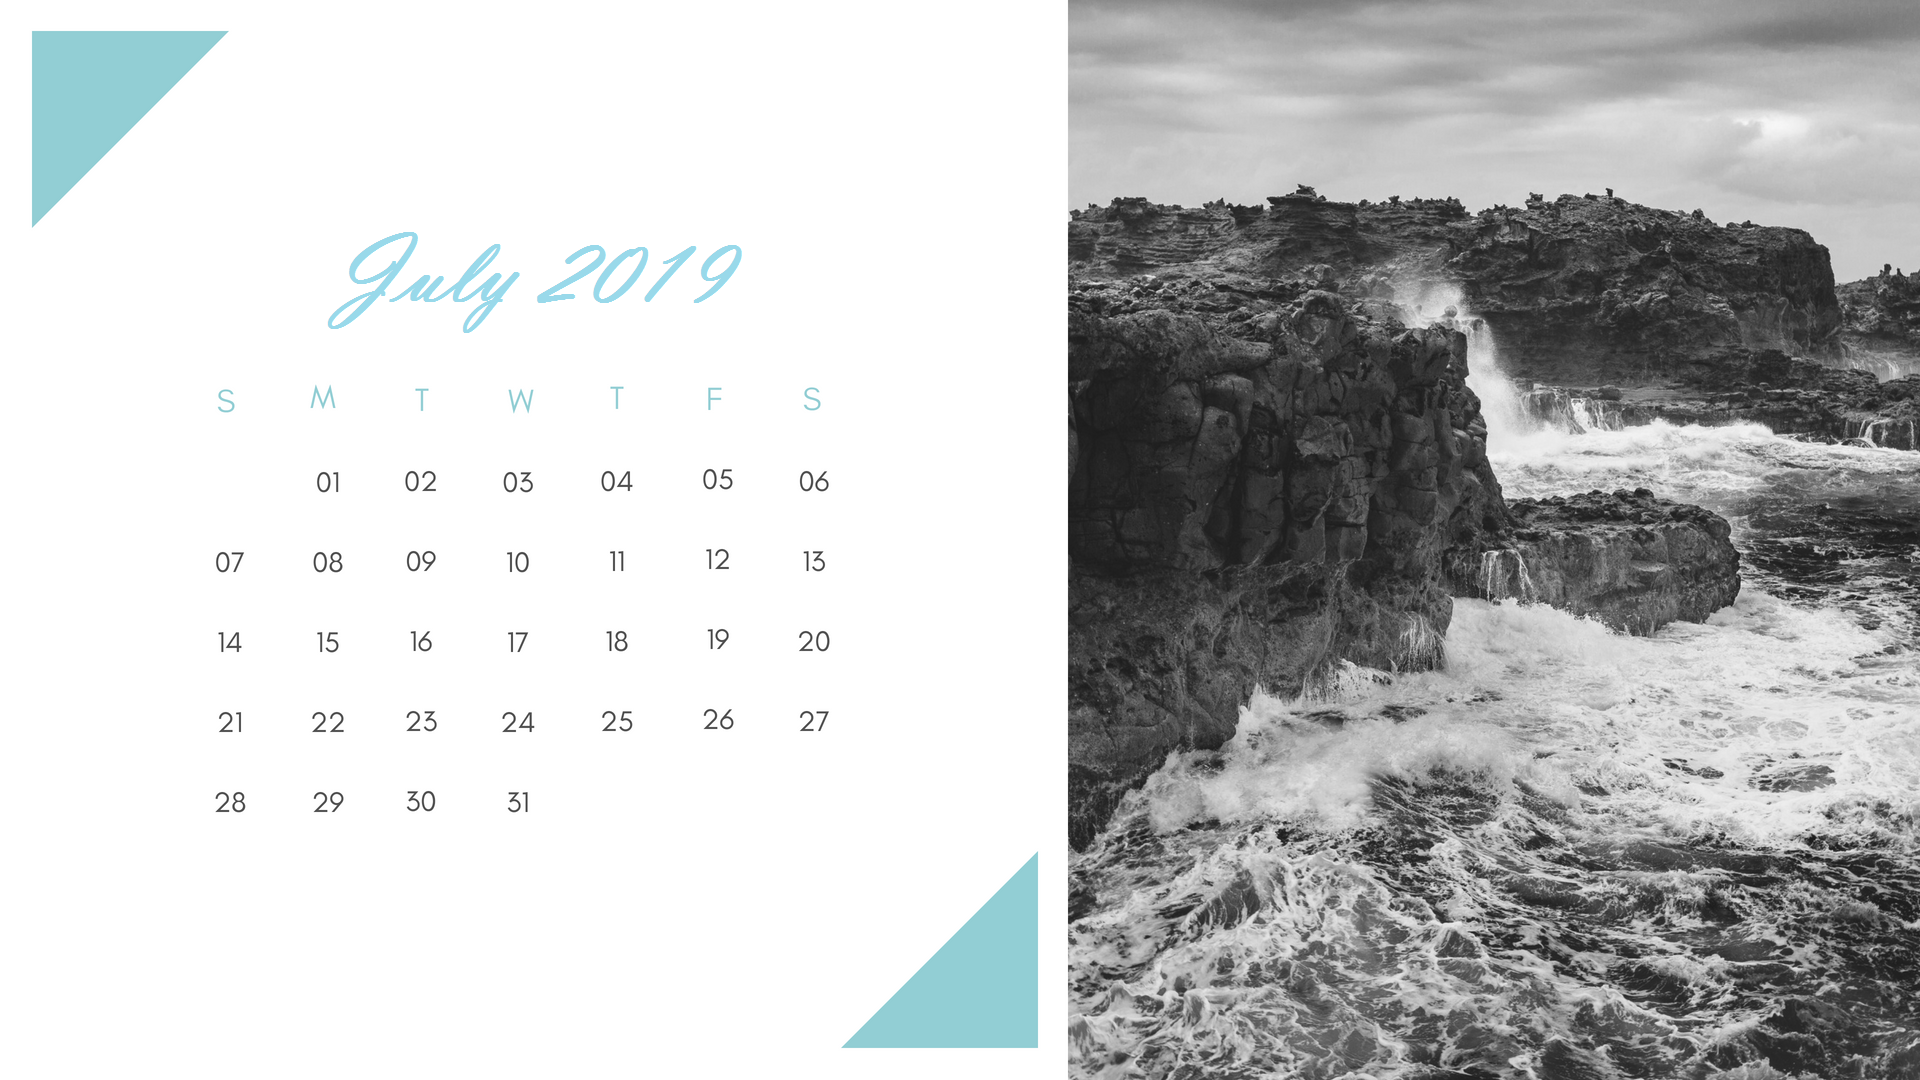 Cute July 2019 Calendar Template